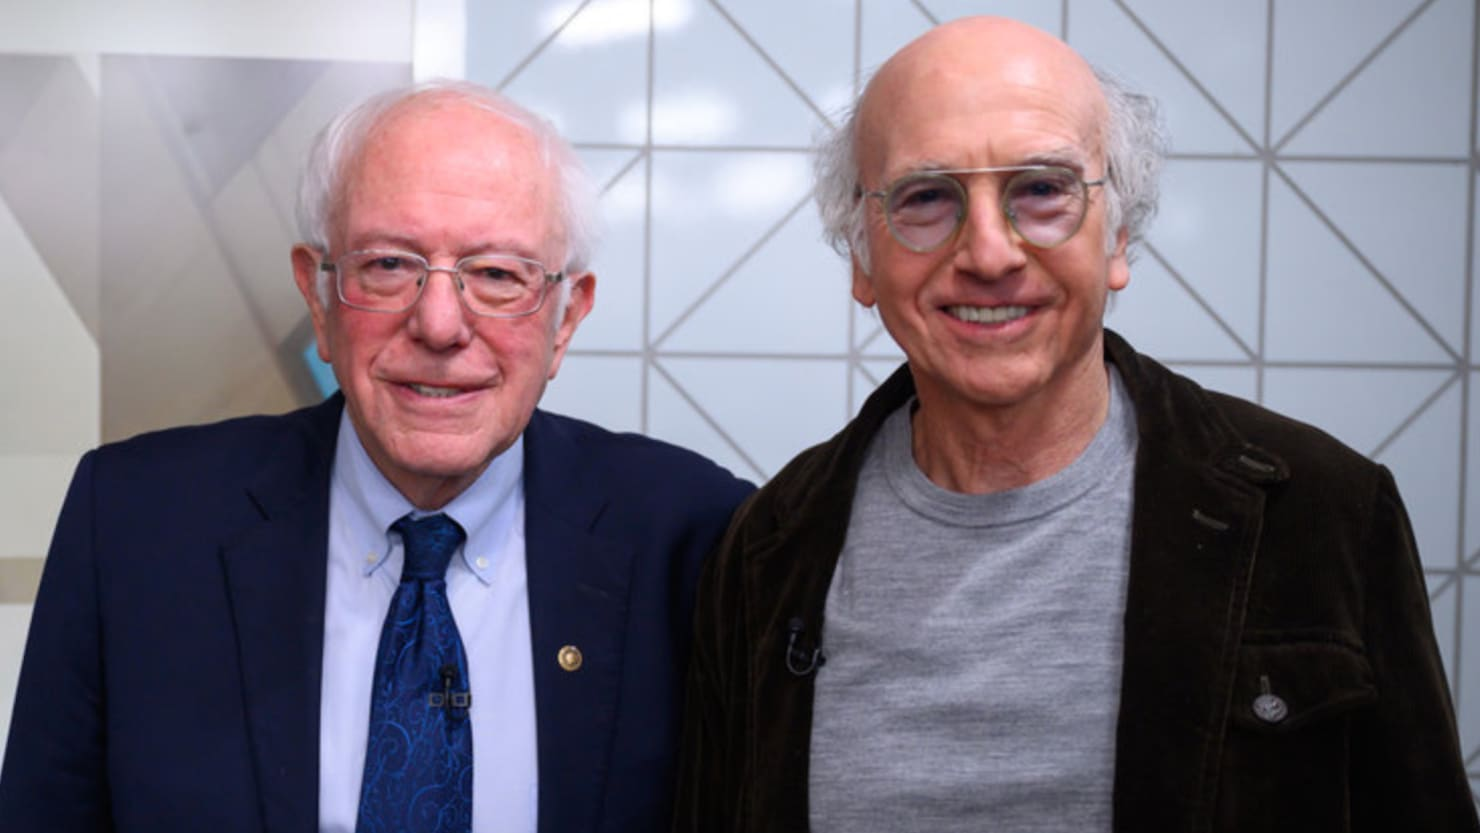 Larry David: Bernie Sanders 'Should Drop Out'